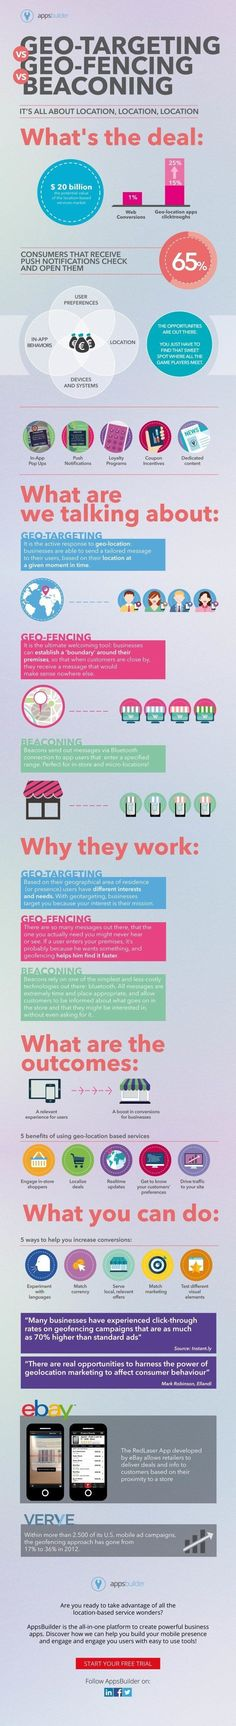 Geo-Targeting vs. Geo-Fencing vs. Beaconing -- Location Based Marketing Infographic